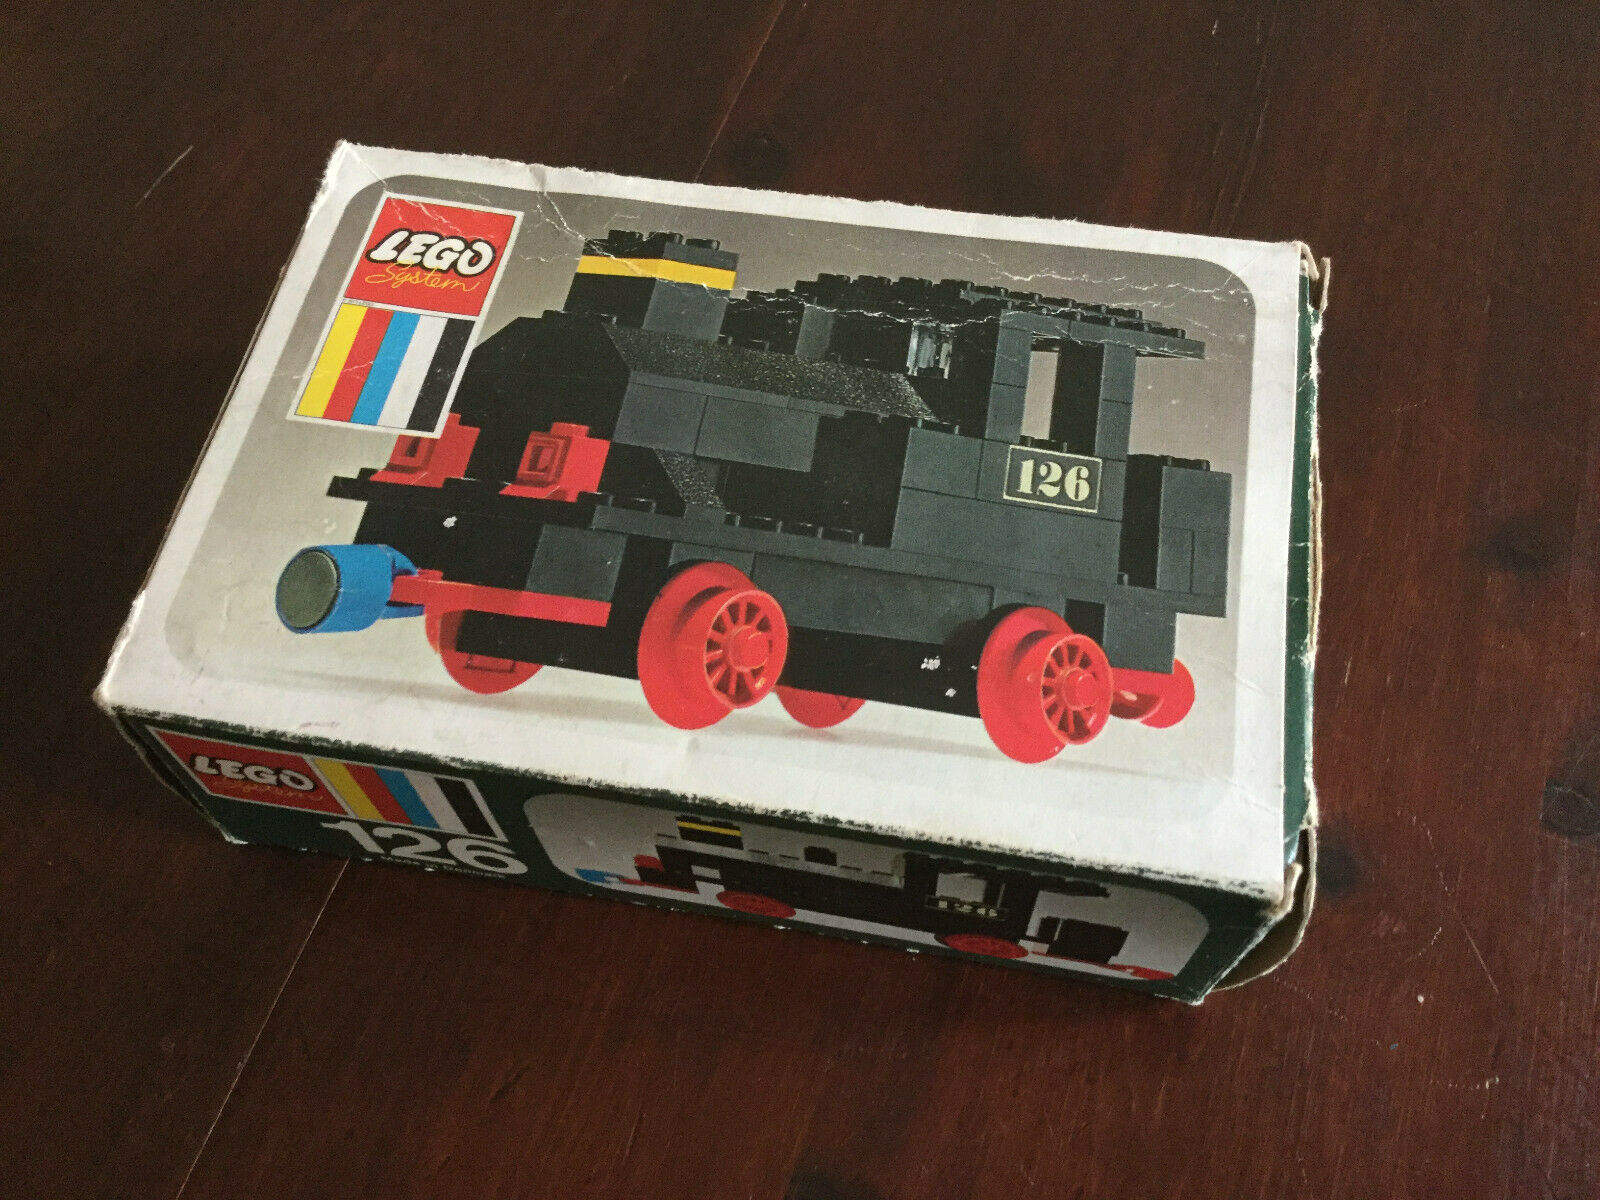 LEGO Set 126 - Steam Locomotive (Push) - Vintage